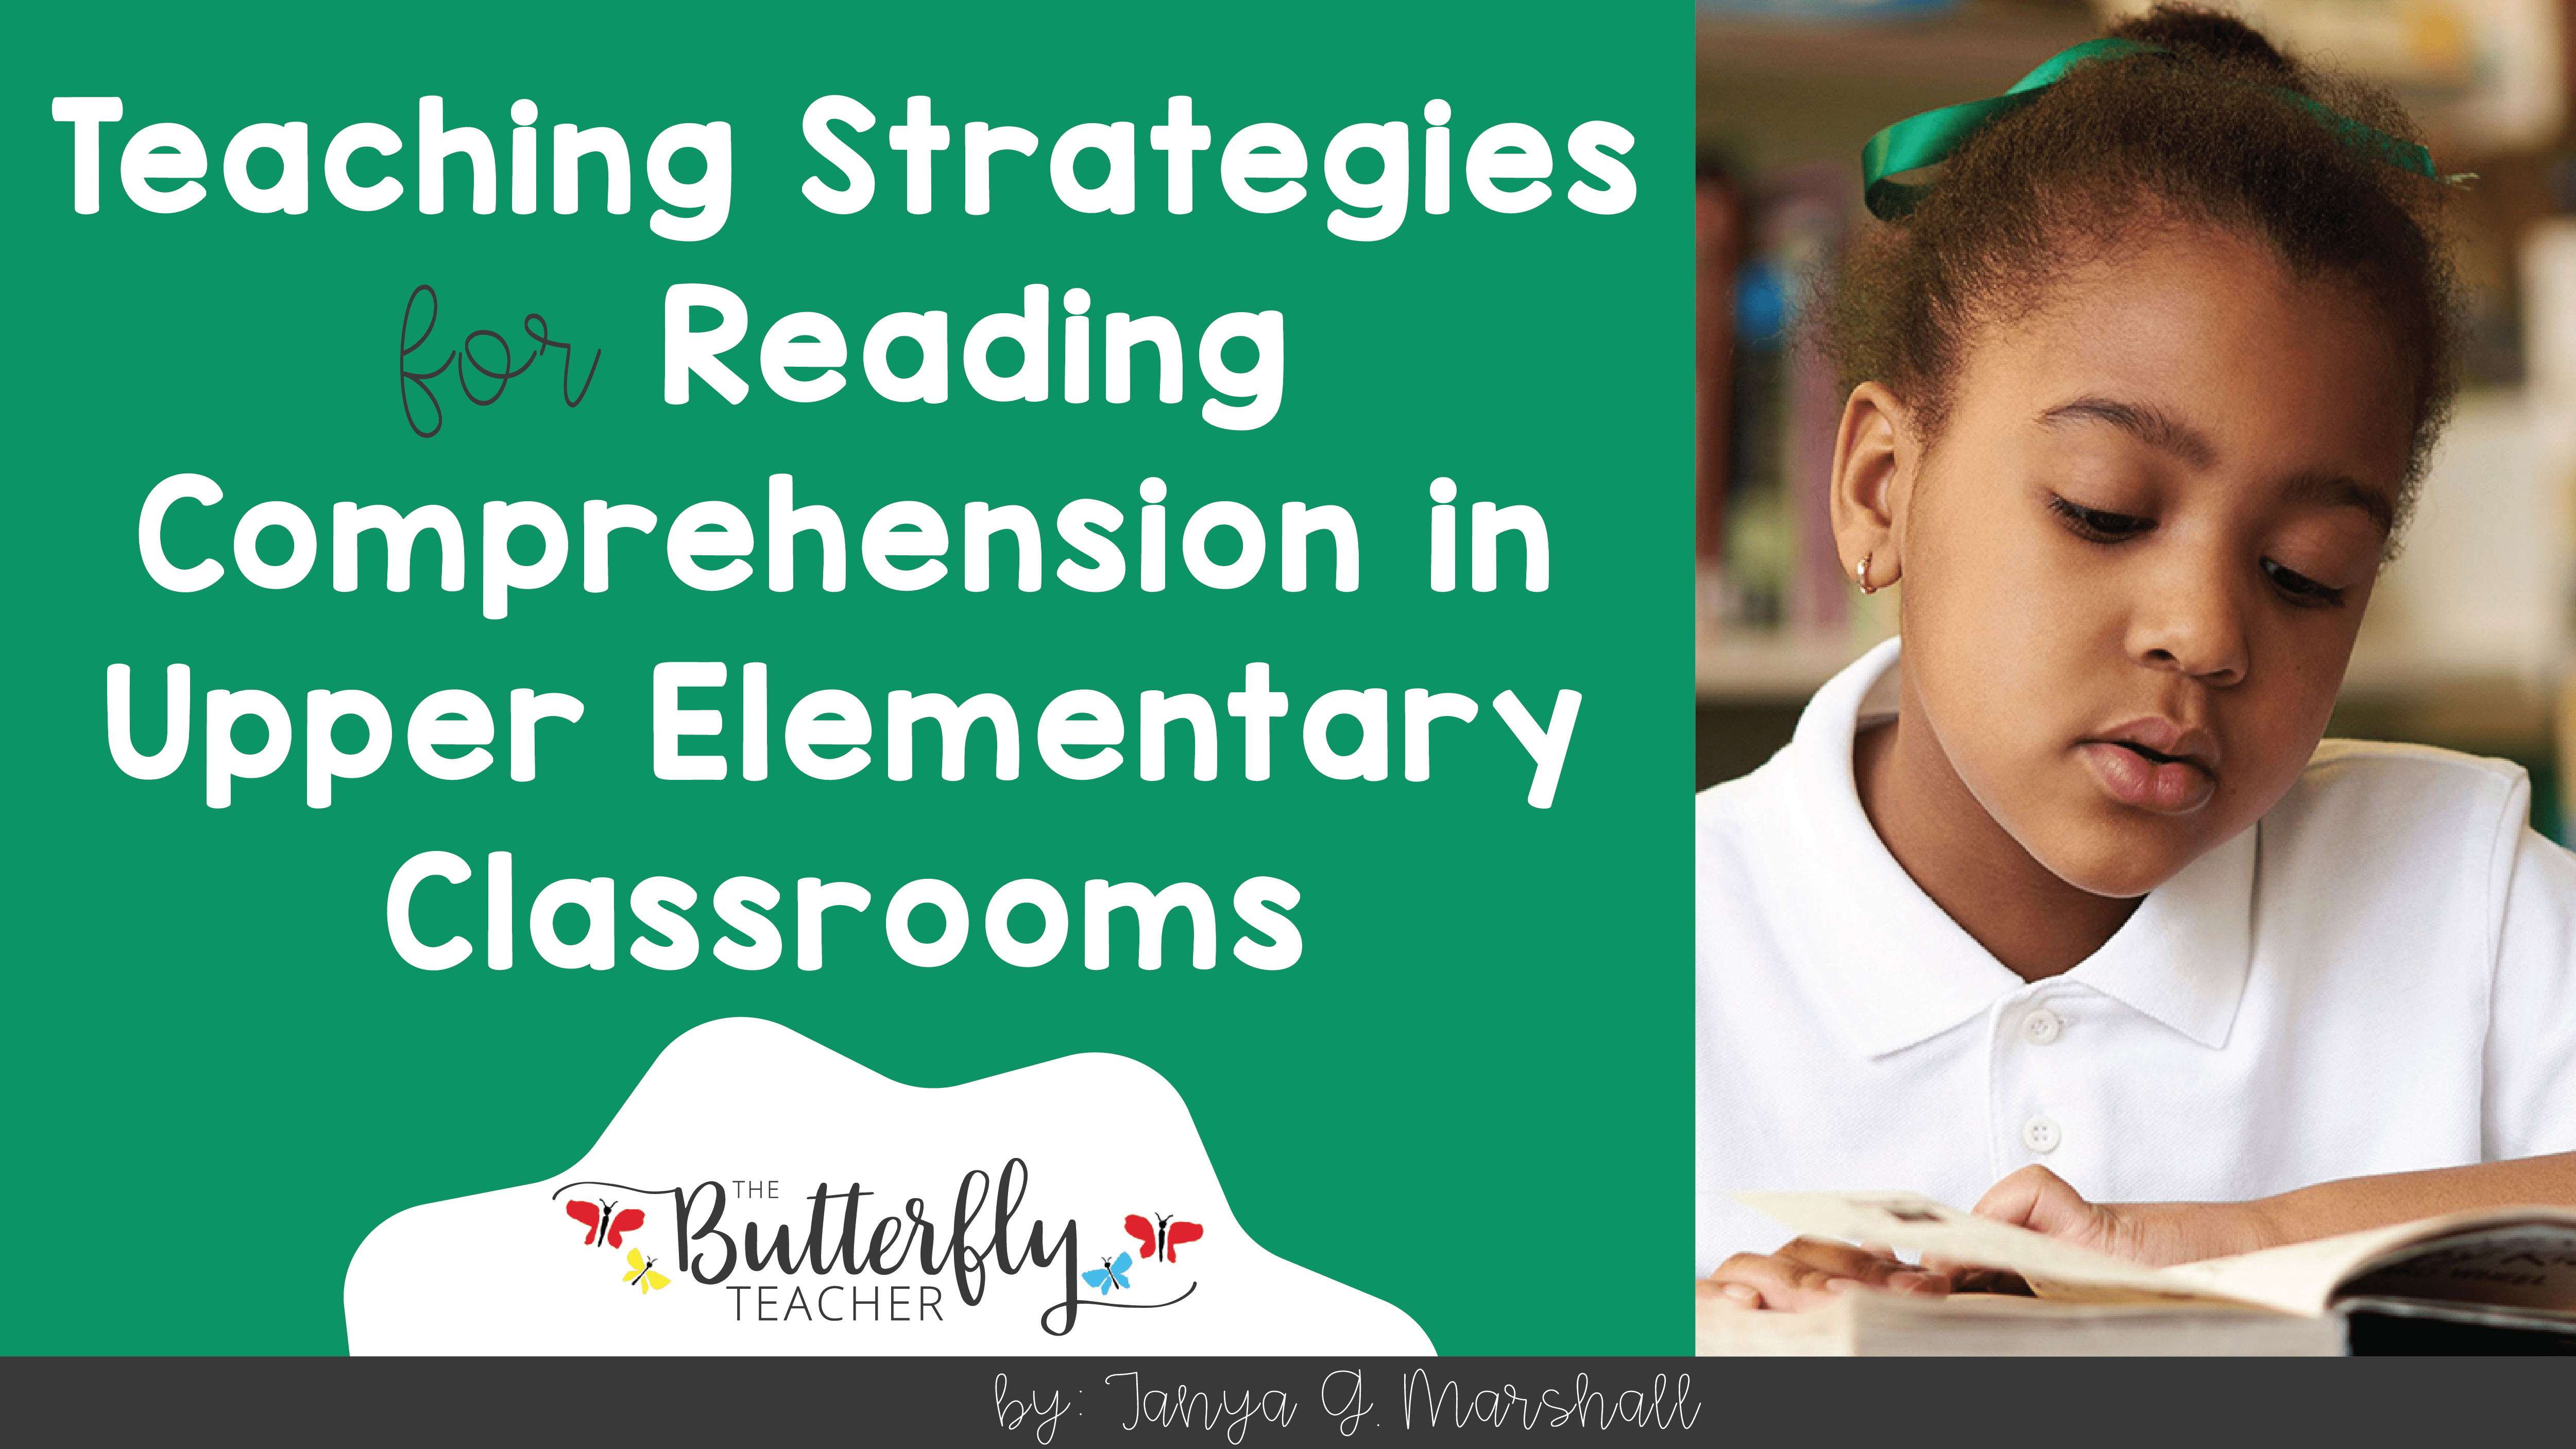 - Reading Comprehension Strategies For Upper Elementary Students